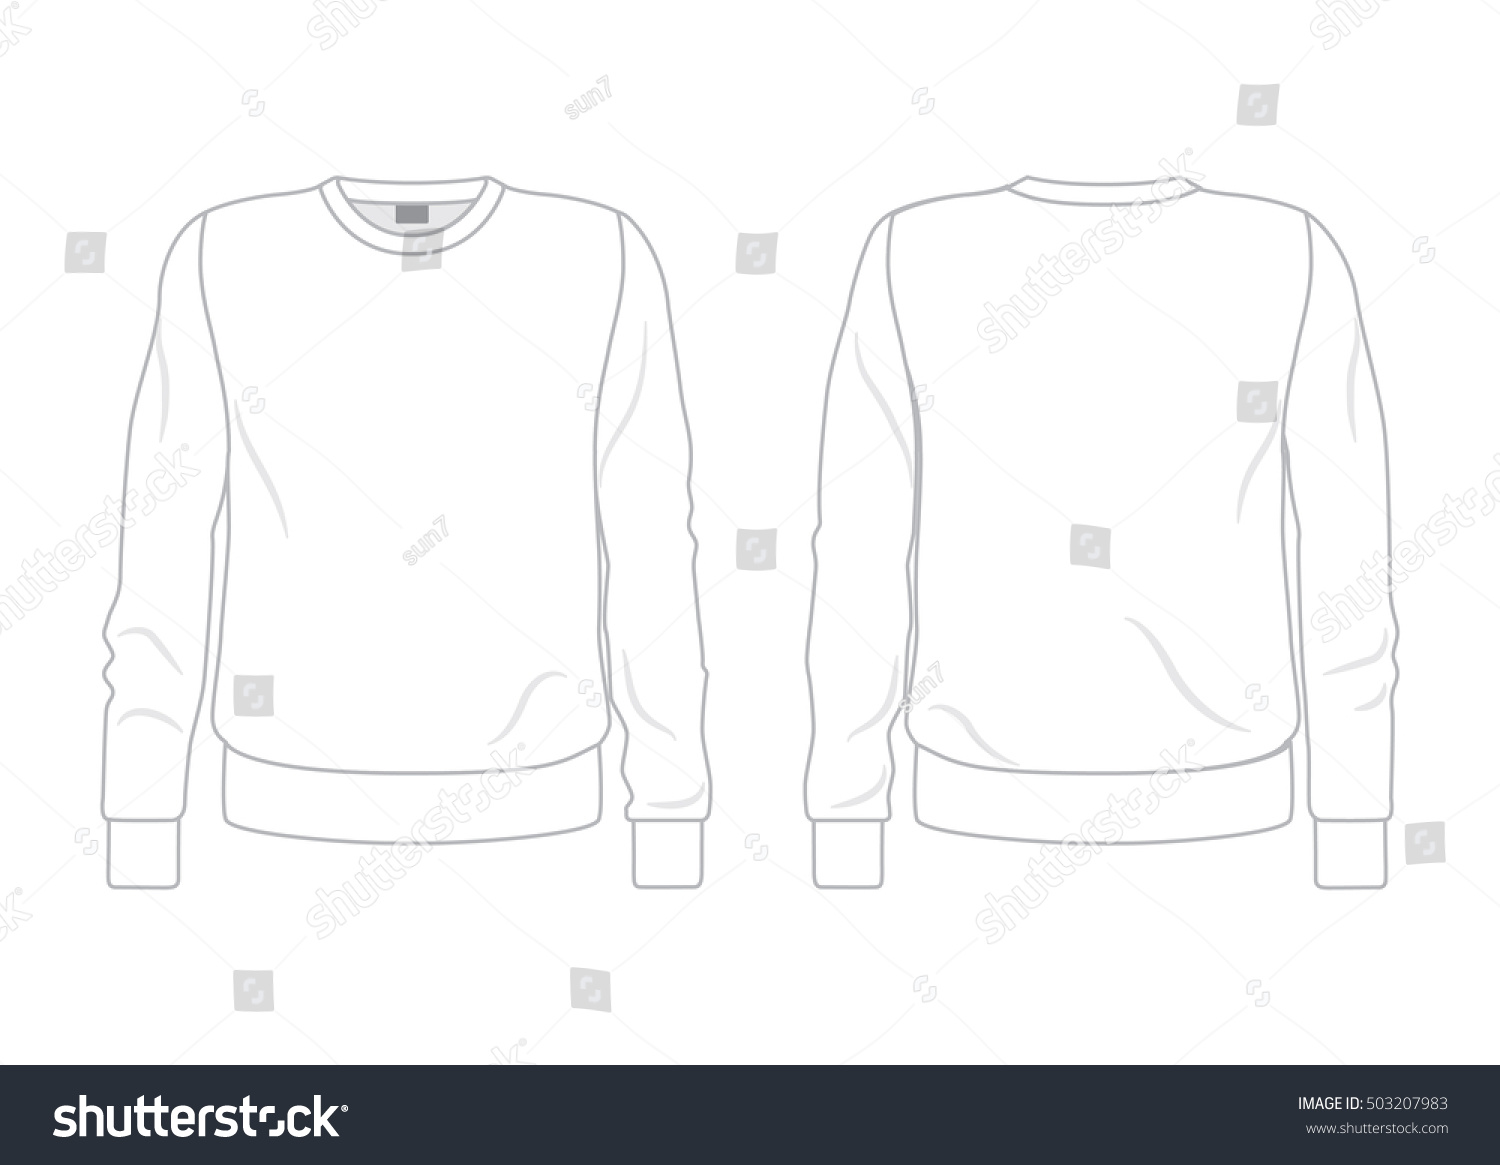 White men's sweatshirt template front and back view #503207983